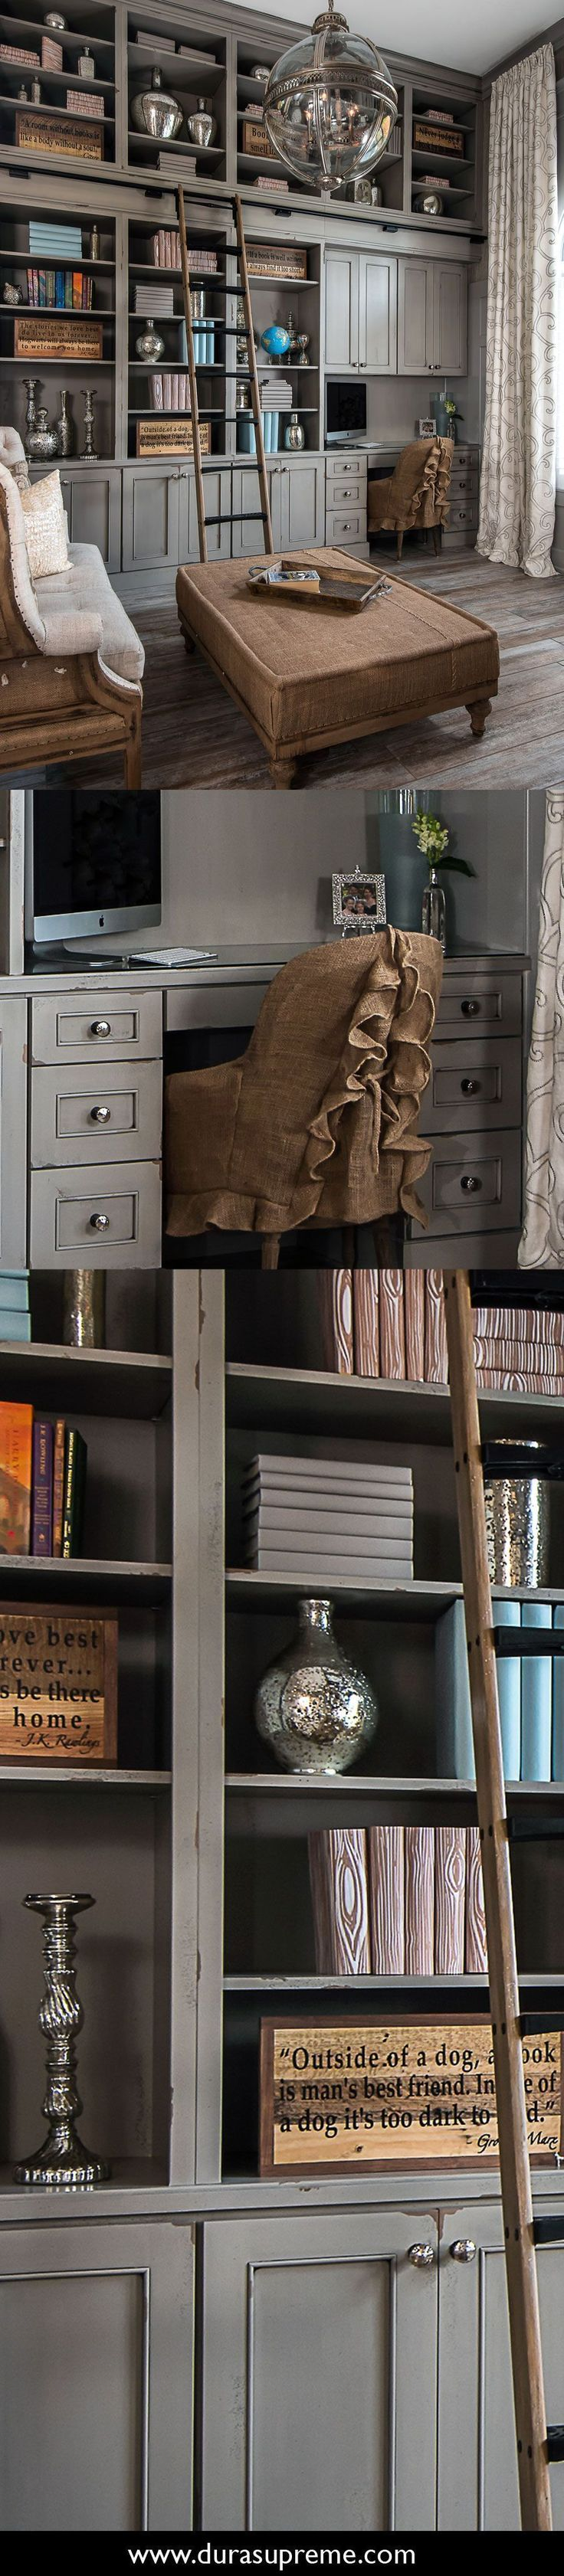 Shabby chic styled gray and distressed painted library cabinets and built-in bookcases in Heritage Paint from Dura Supreme Cabinetry with rolling ladder and burlap inspired furniture. Home Office with Shabby Chic Style. Design by Lindsey Markel of Dillman & Upton. #shabbychichomesoffice #shabbychicfurniturepainting #homelibraries